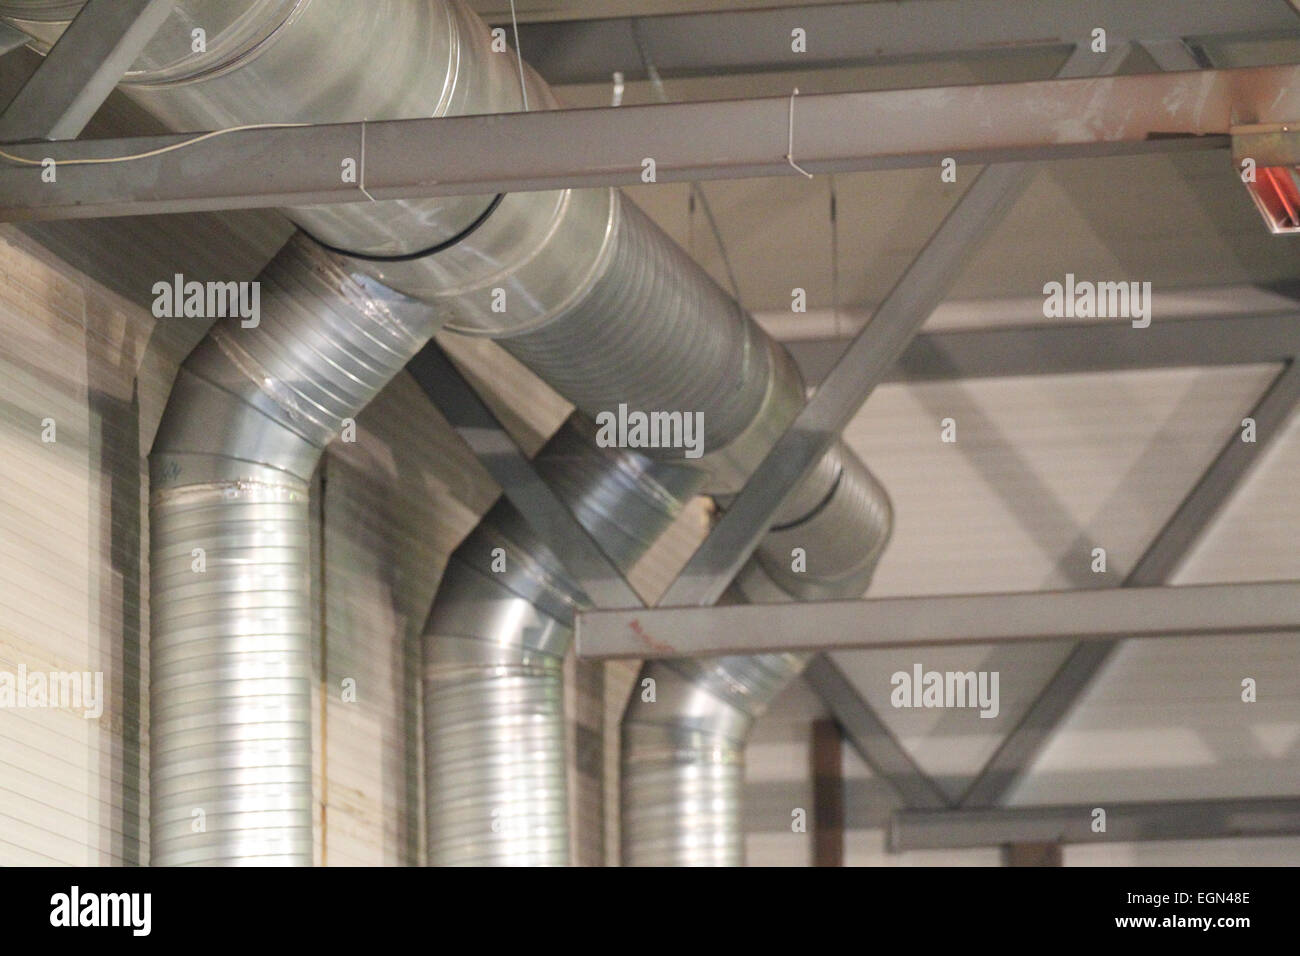 Industrial Ventilation Ducts : Ducting system stock photos images